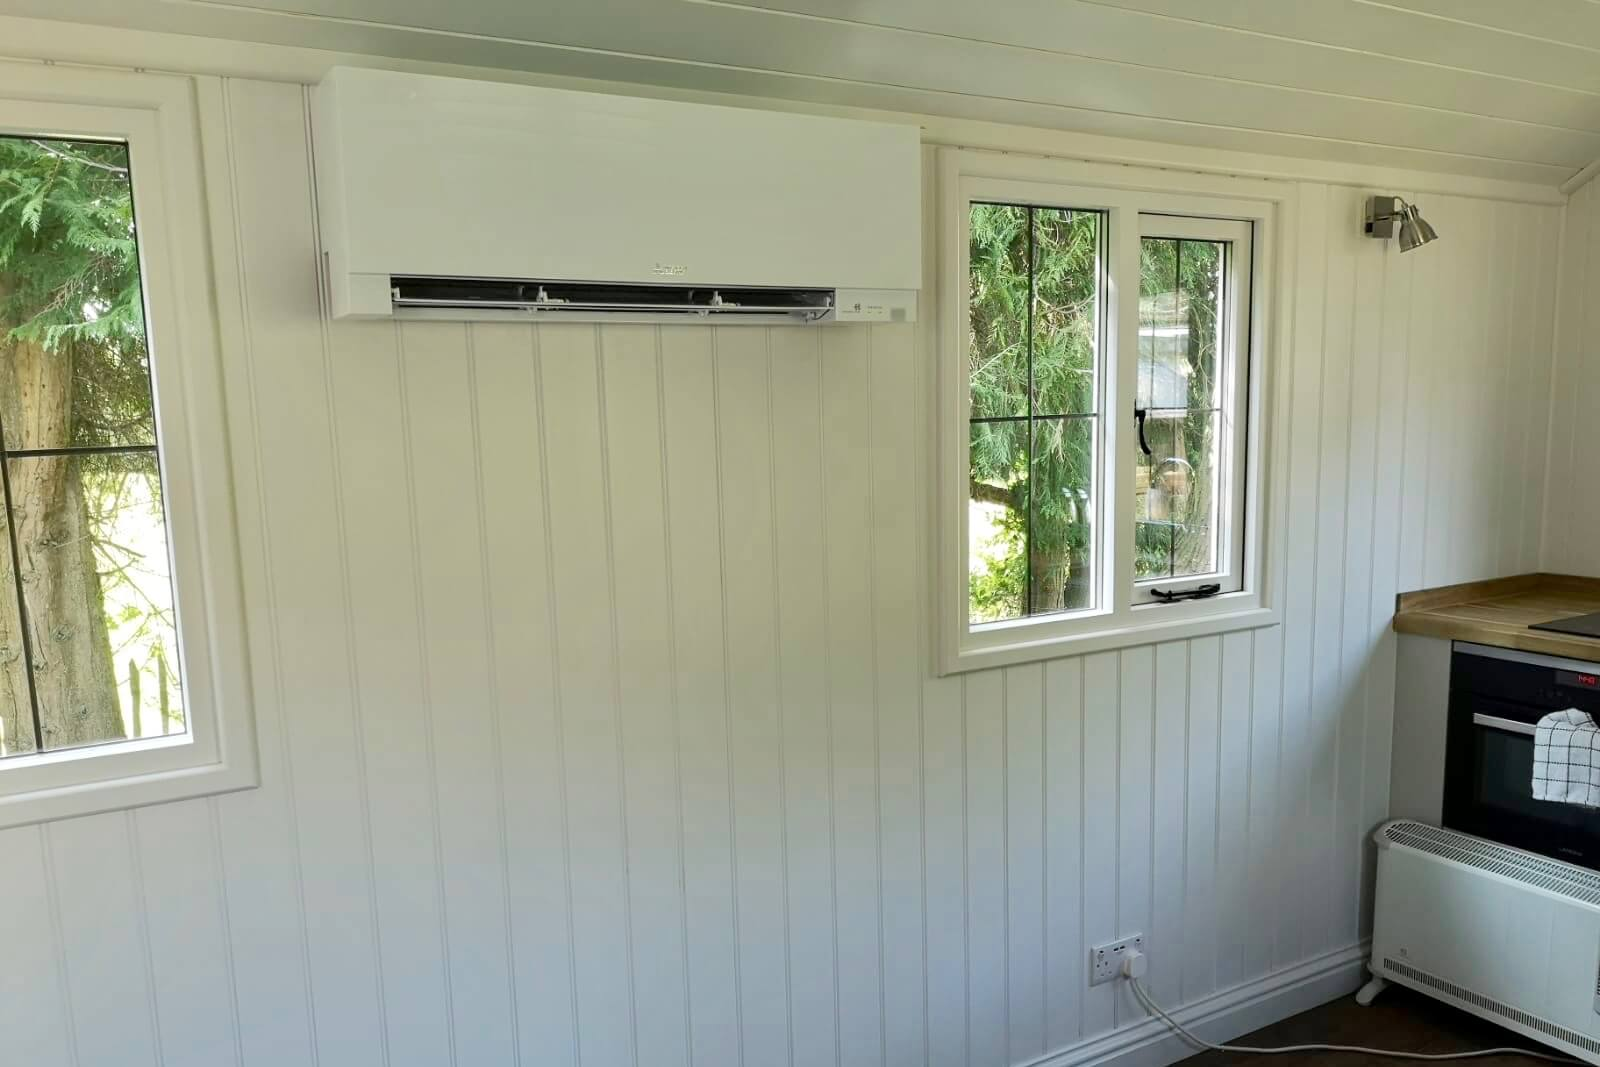 White mitsubishi air conditioning wall mounted unit fitted inside shepherds hut SubCool FM